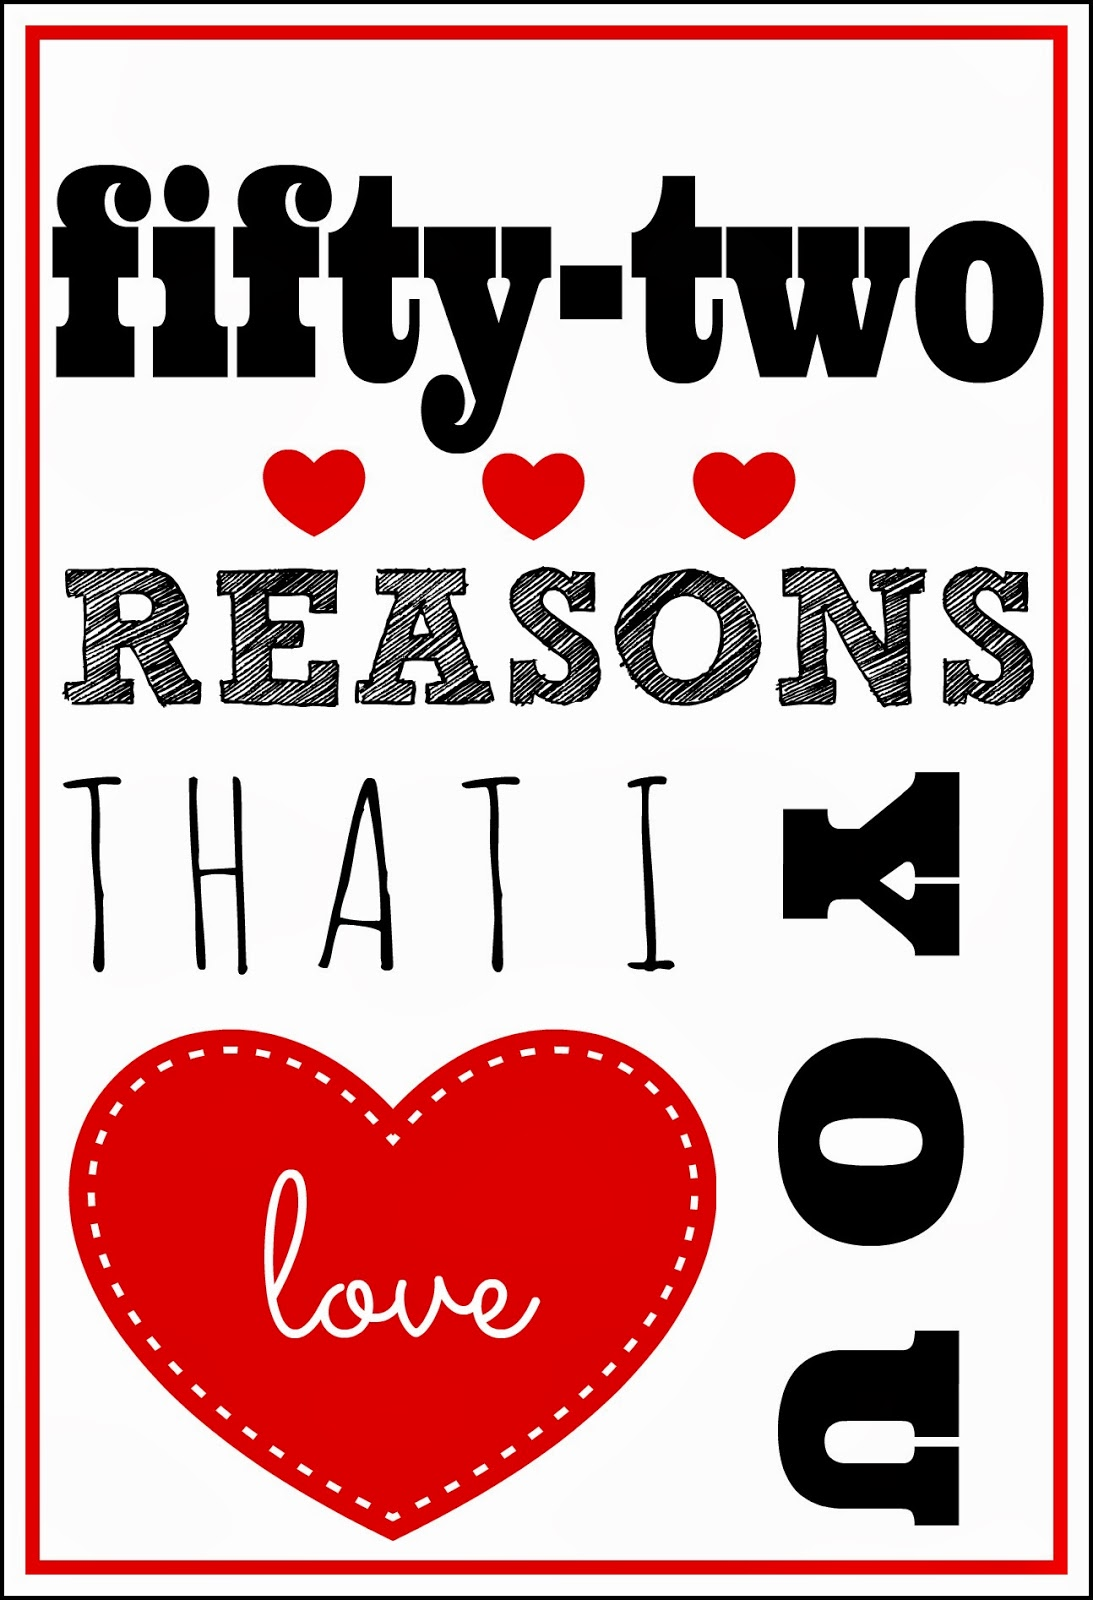 52 reasons i love you template free download - larissa another day 52 reasons i love you printable a